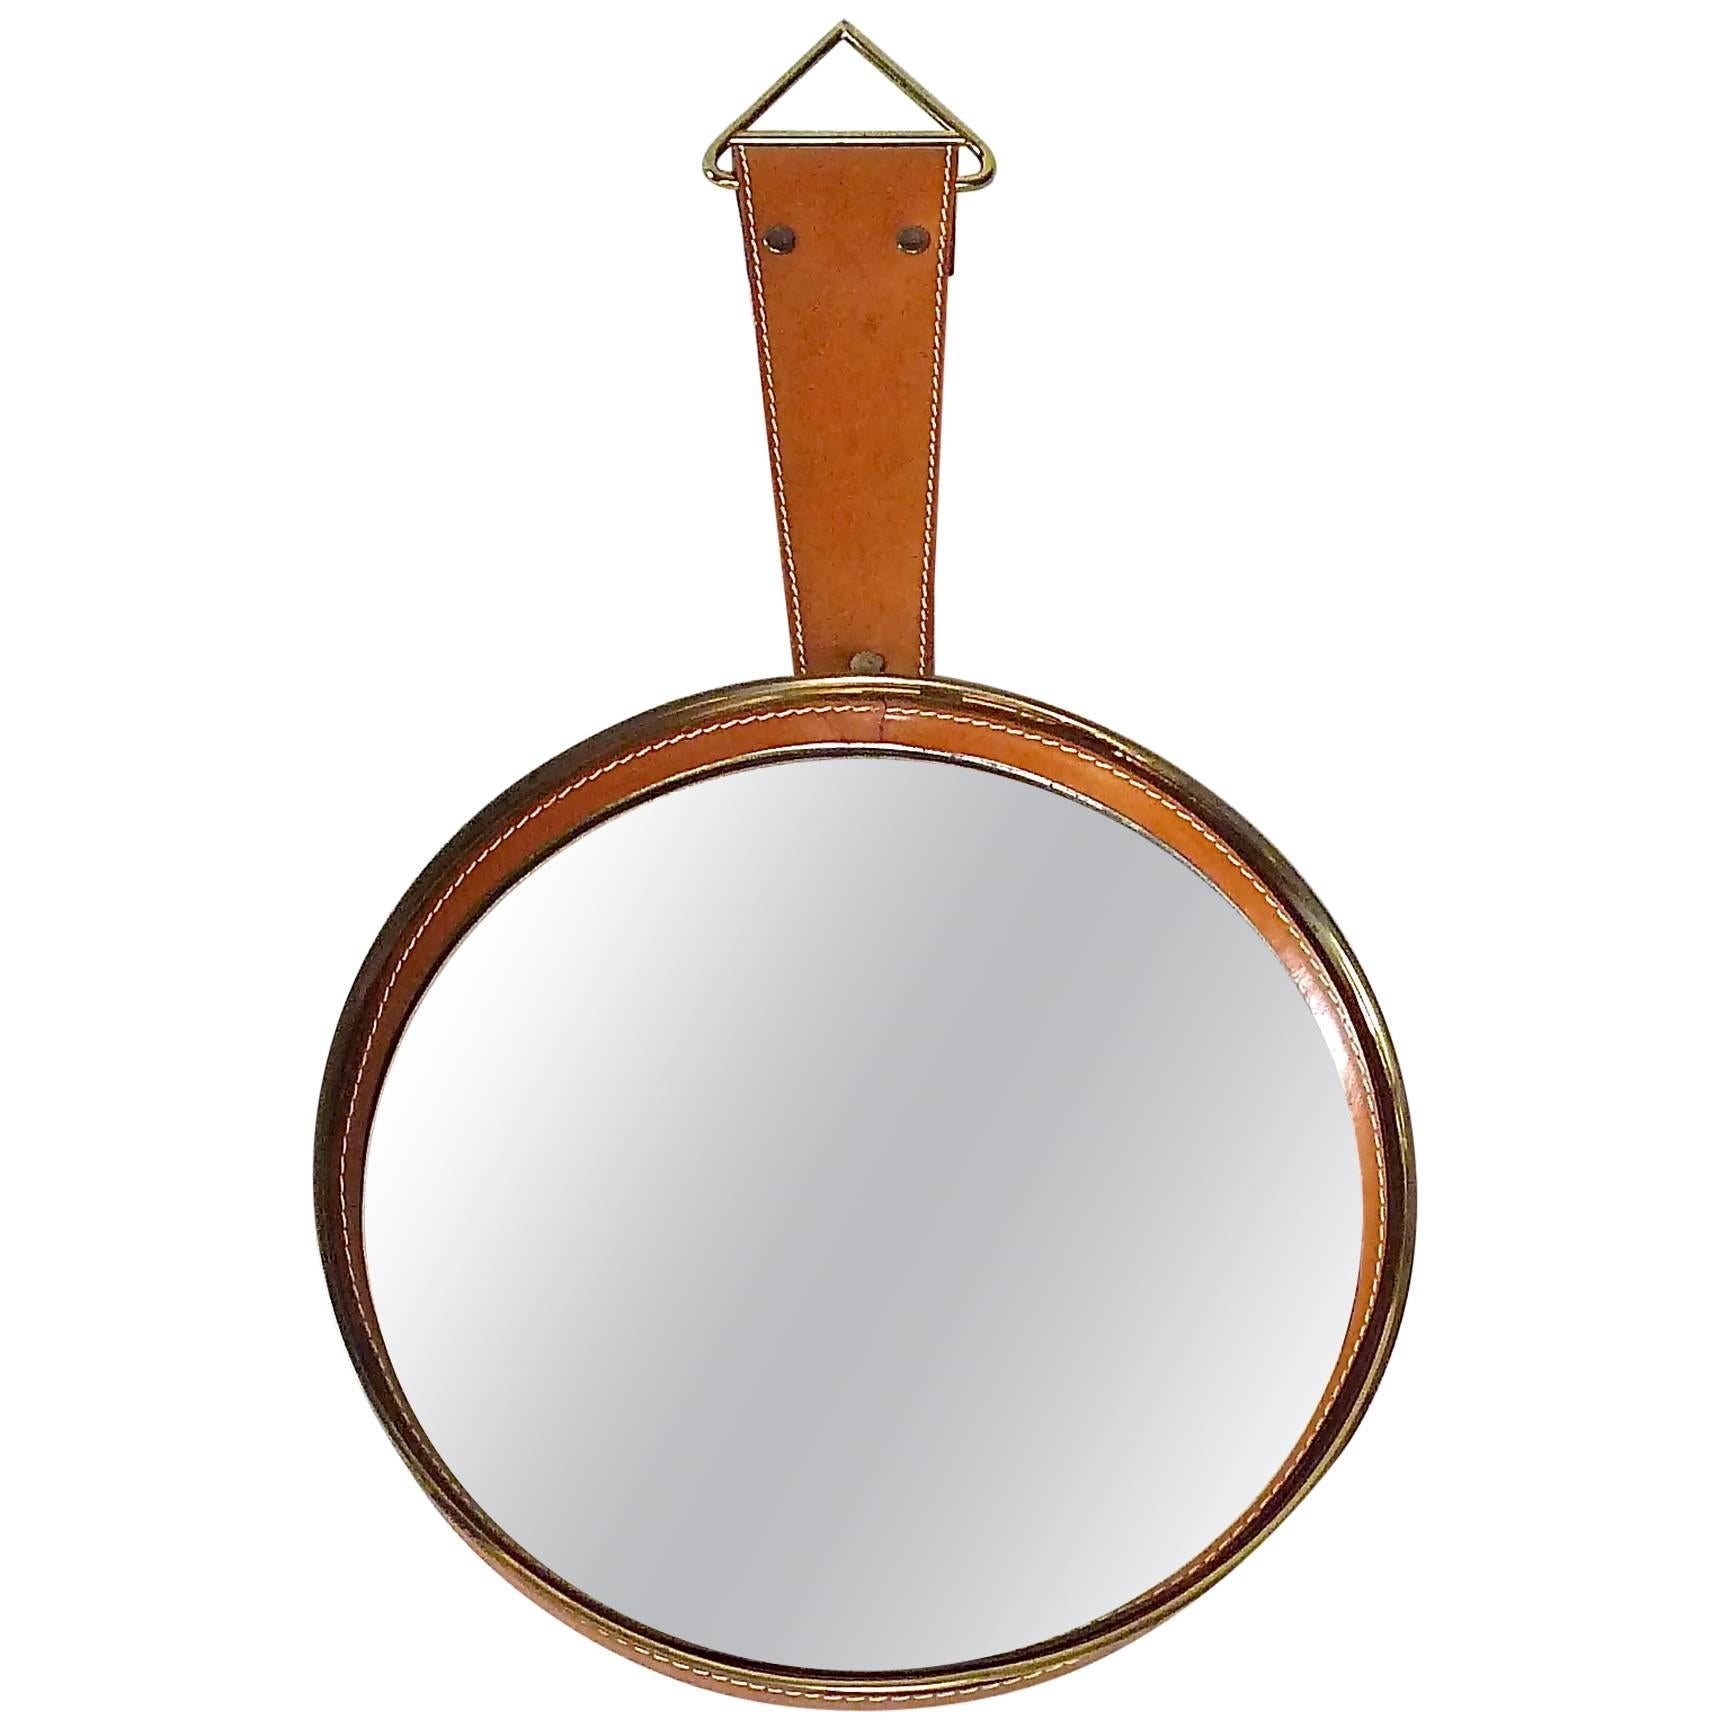 Round Midcentury Wall Mirror Brass Brown Stitched Leather French Adnet Style